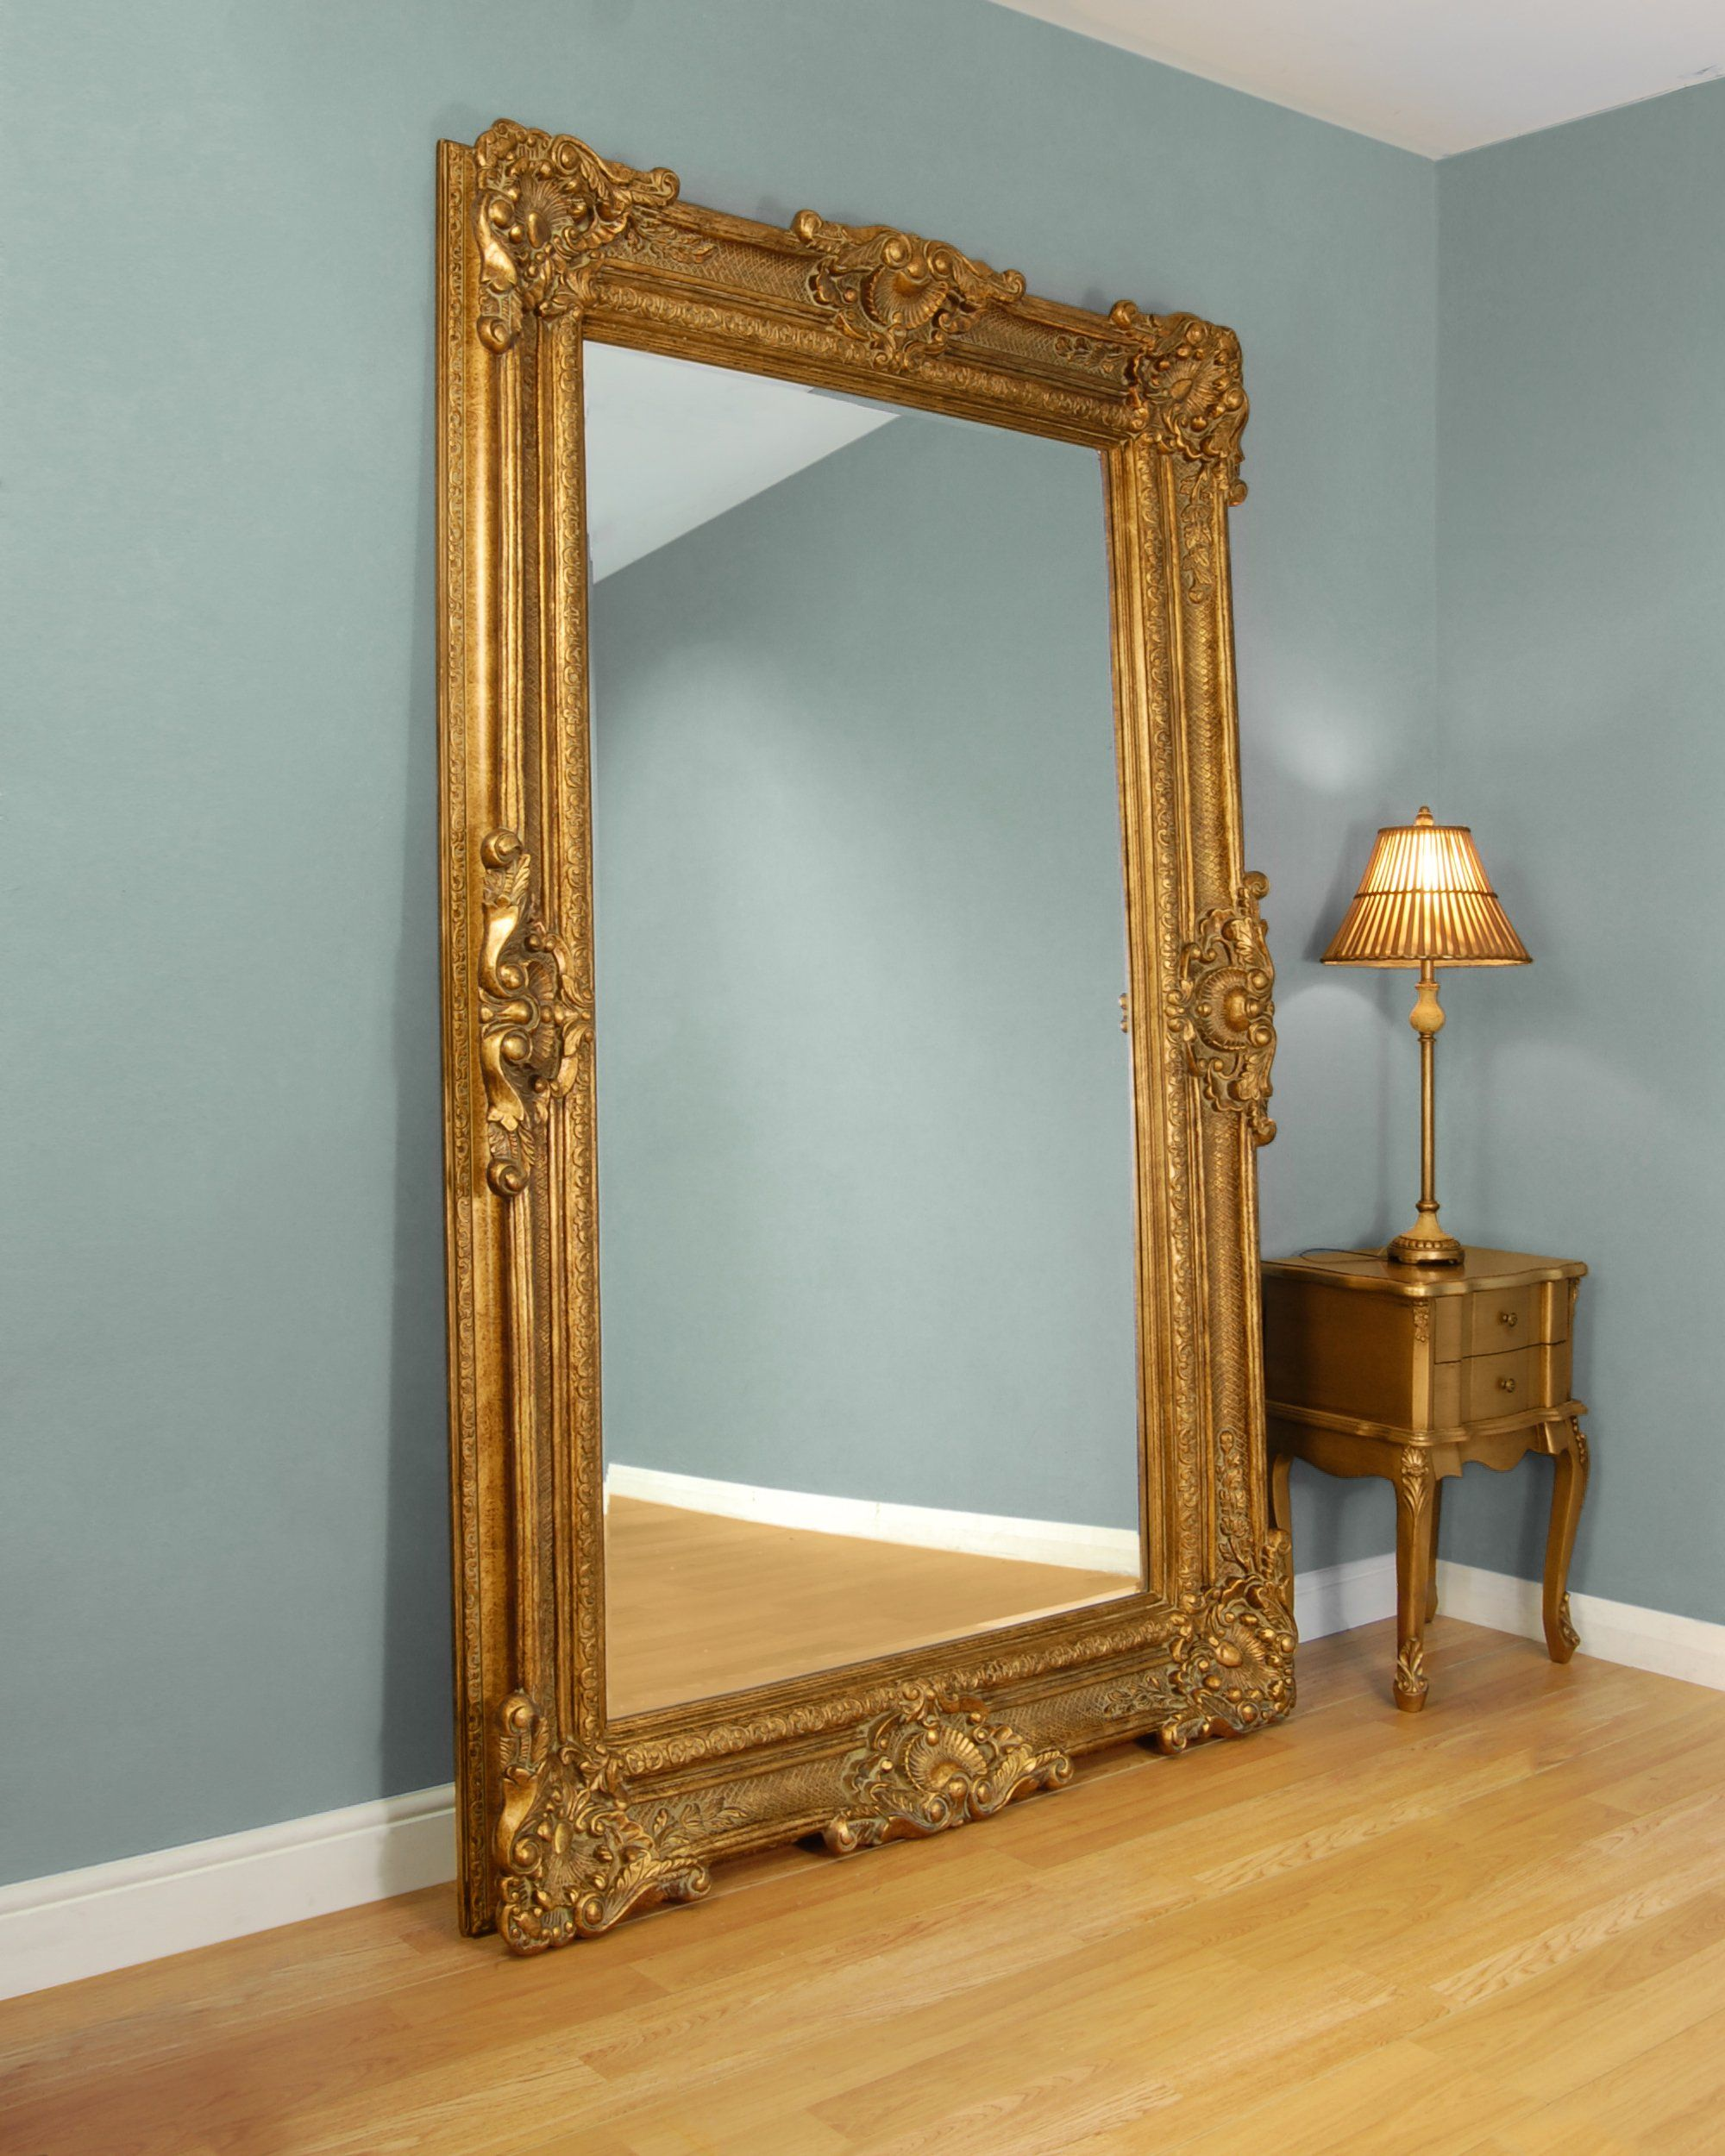 Cm bridgewater large gold framed leaner mirror 225cm x the chandelier mirror company bridgewater mirror arubaitofo Image collections